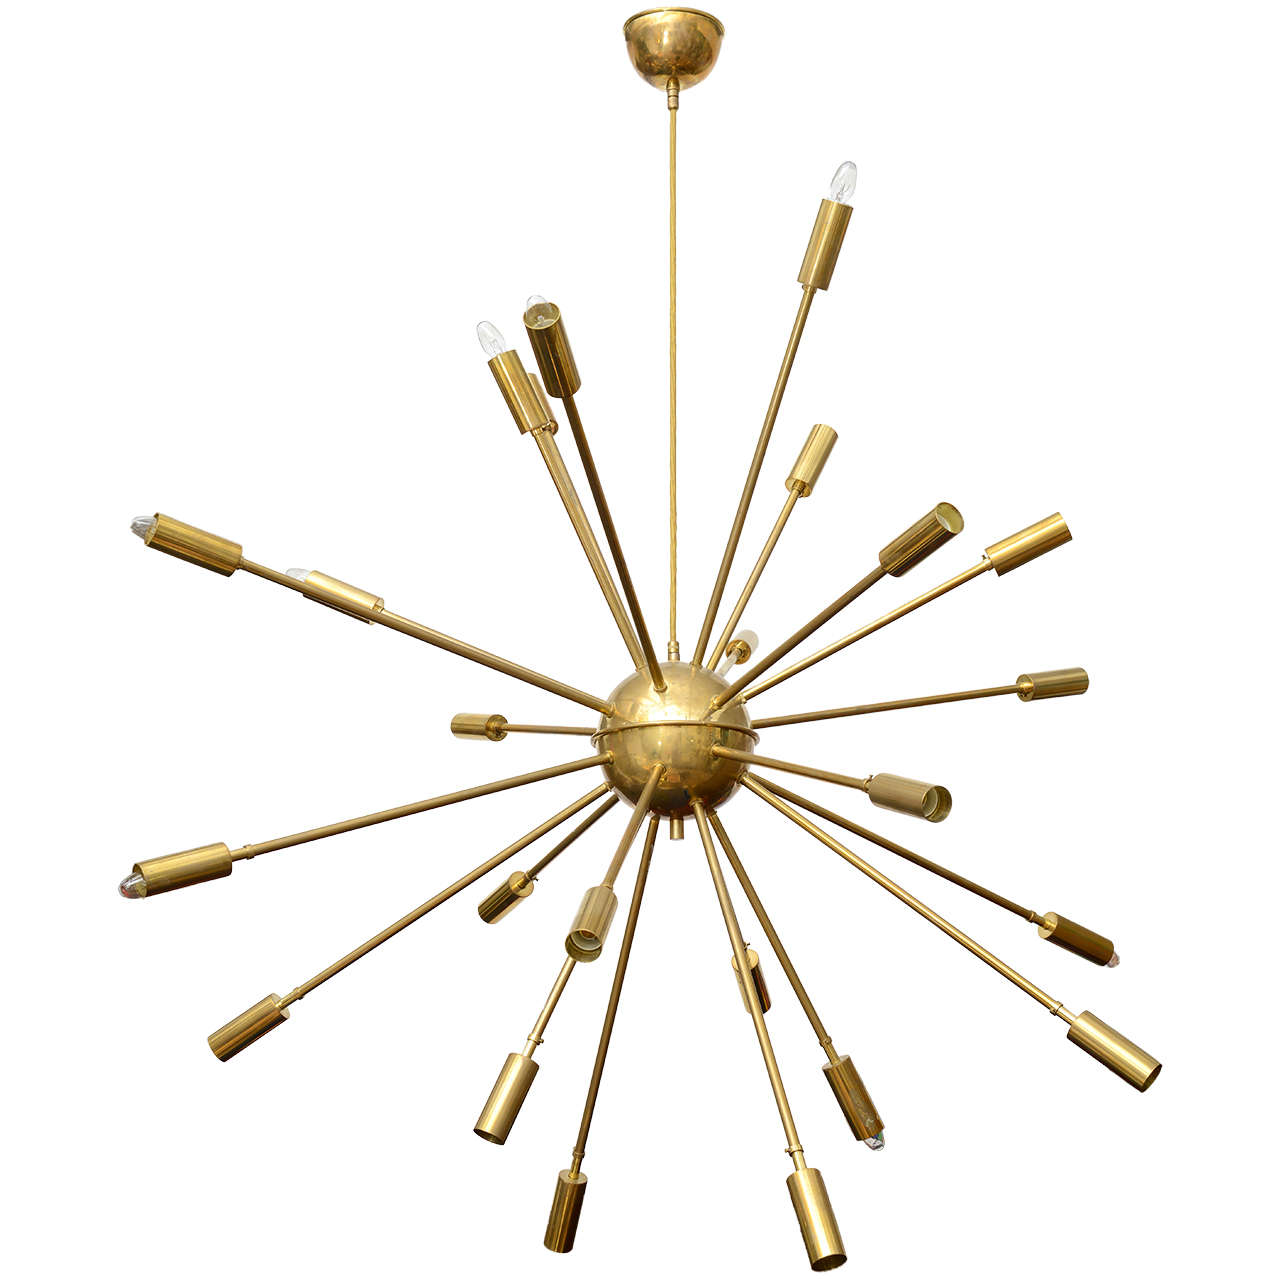 Stilnovo Sputnik chandelier, 1960s, offered by Galleria d'Epoca